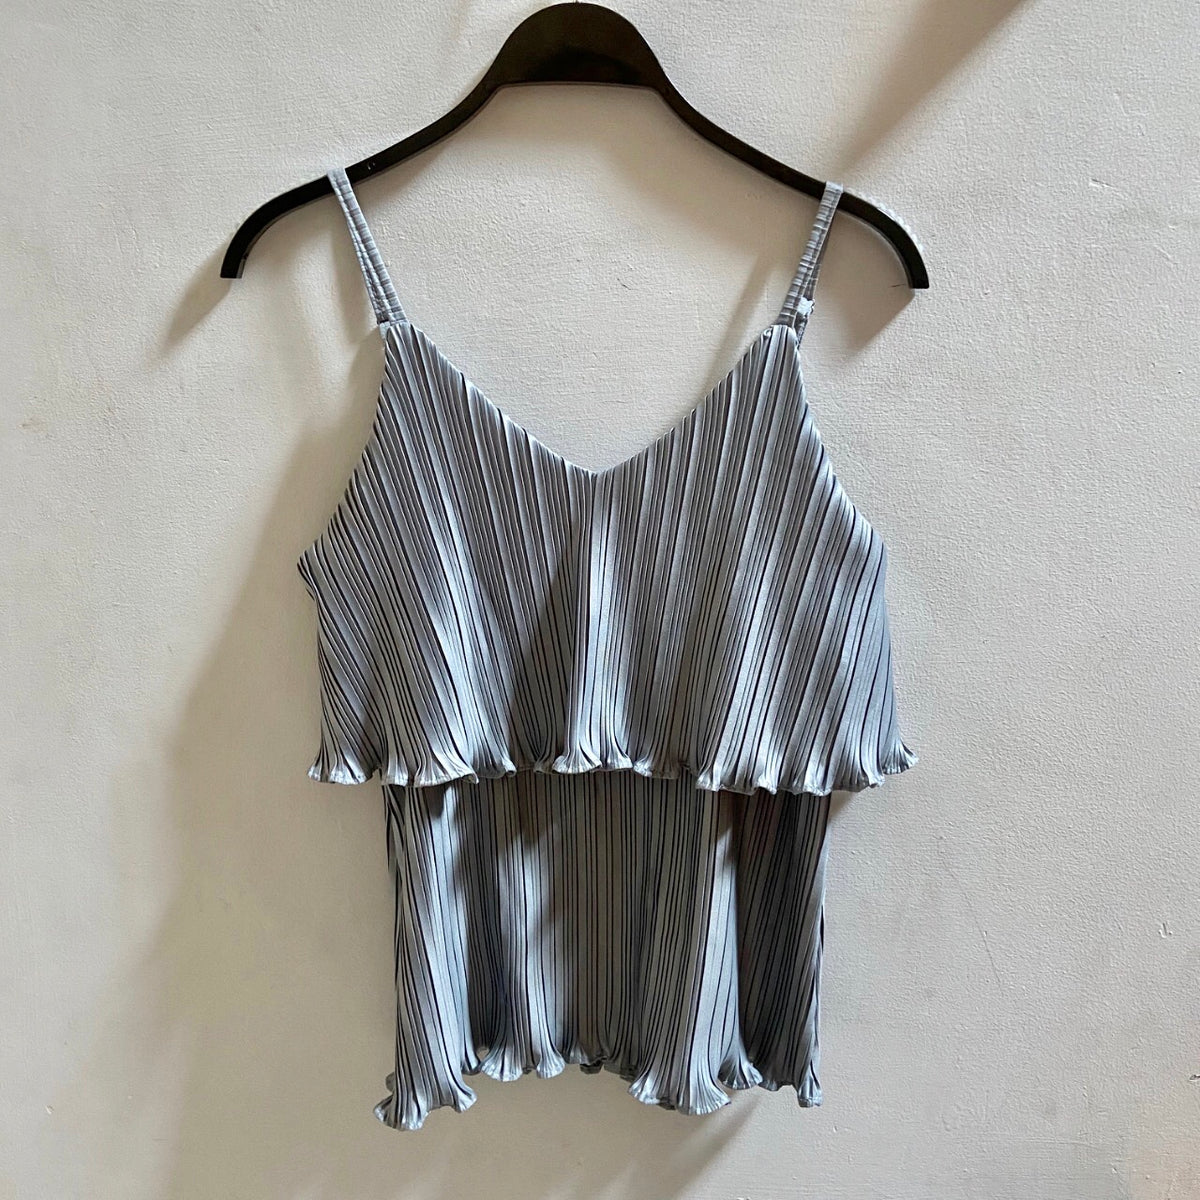 Dittha Pleated Tank Top [pre-orders]